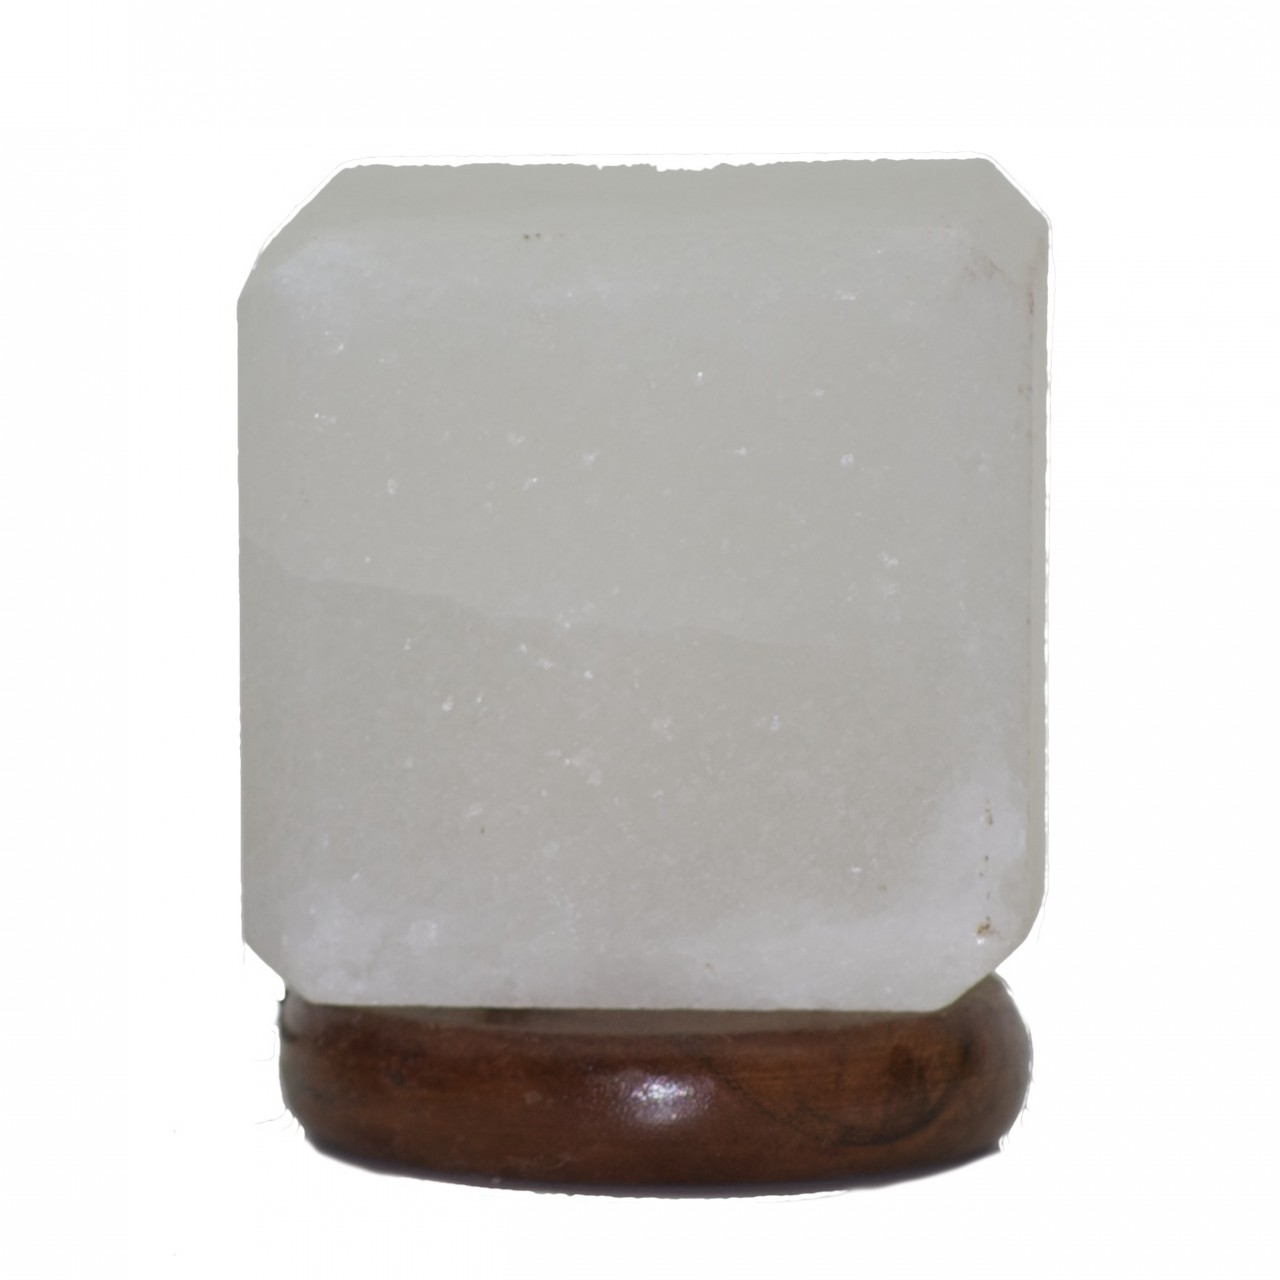 Himalayan Salt Lamps Usb : Himalayan Salt Lamp, USB - Cube